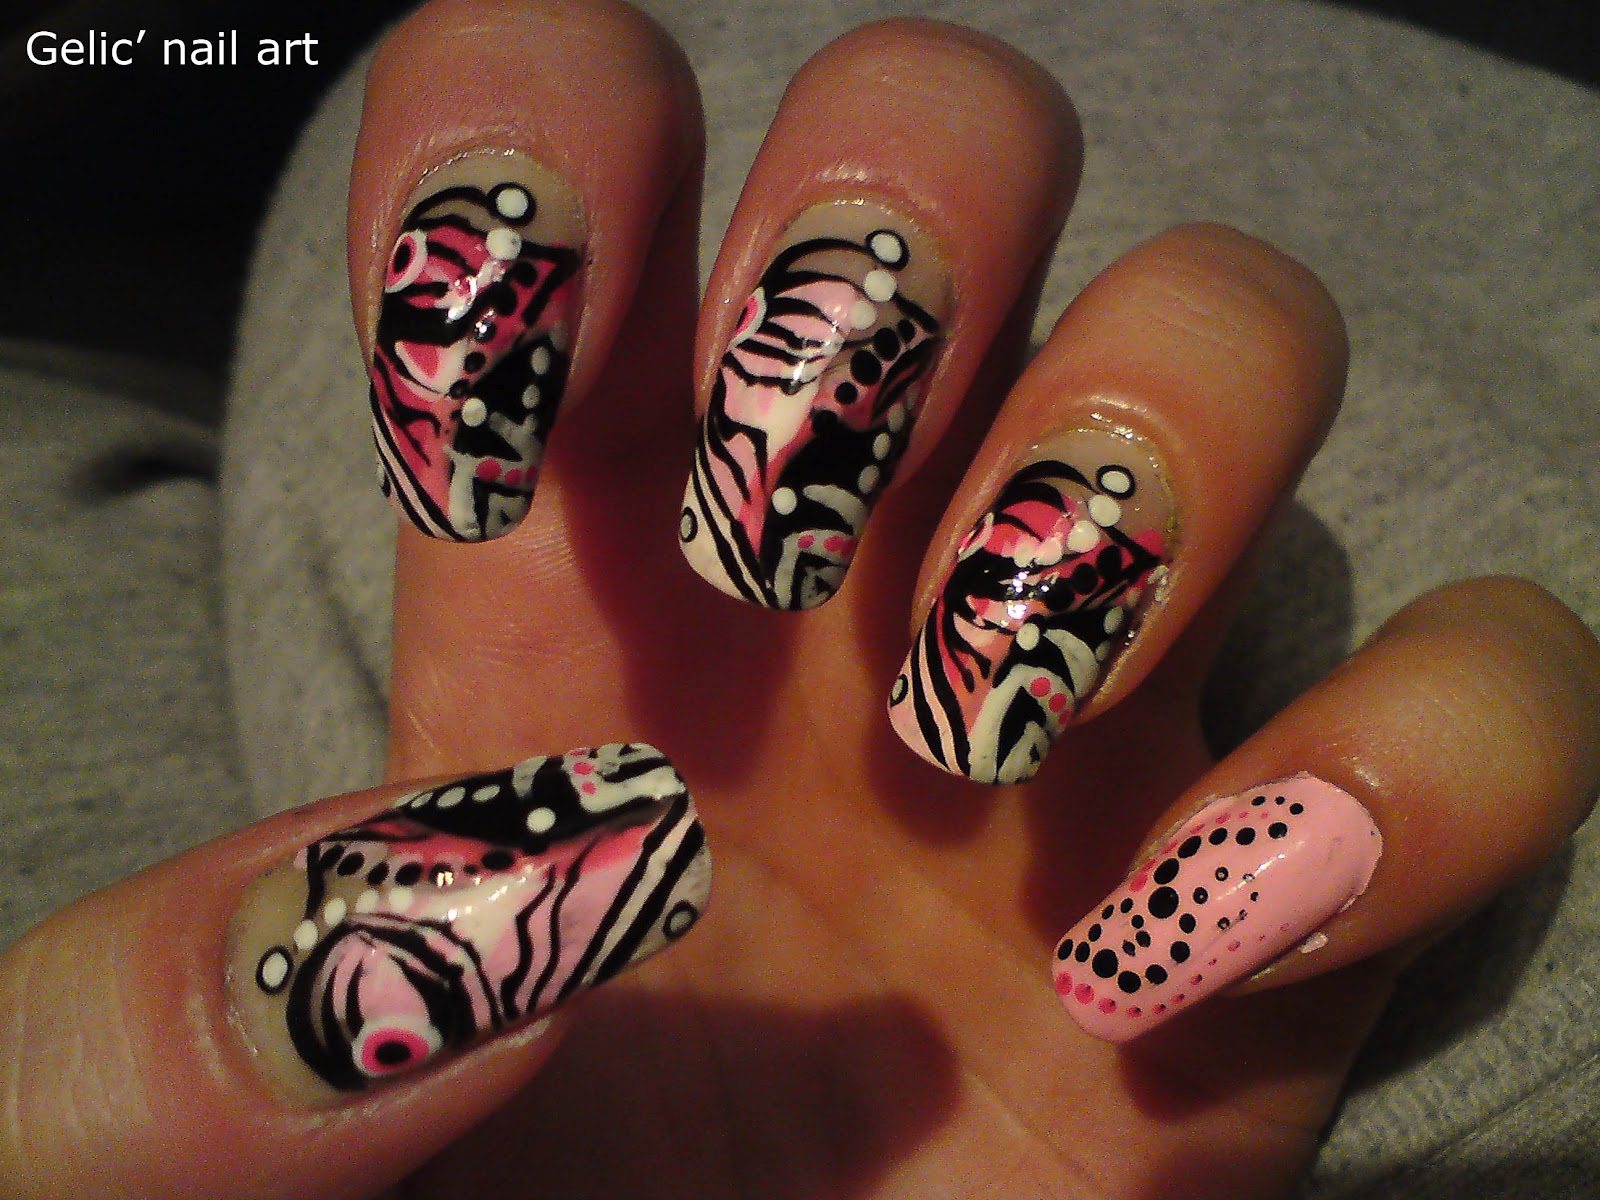 Gelic Nail Art Dots And Stripes Mix Nail Art In Pink Black And White